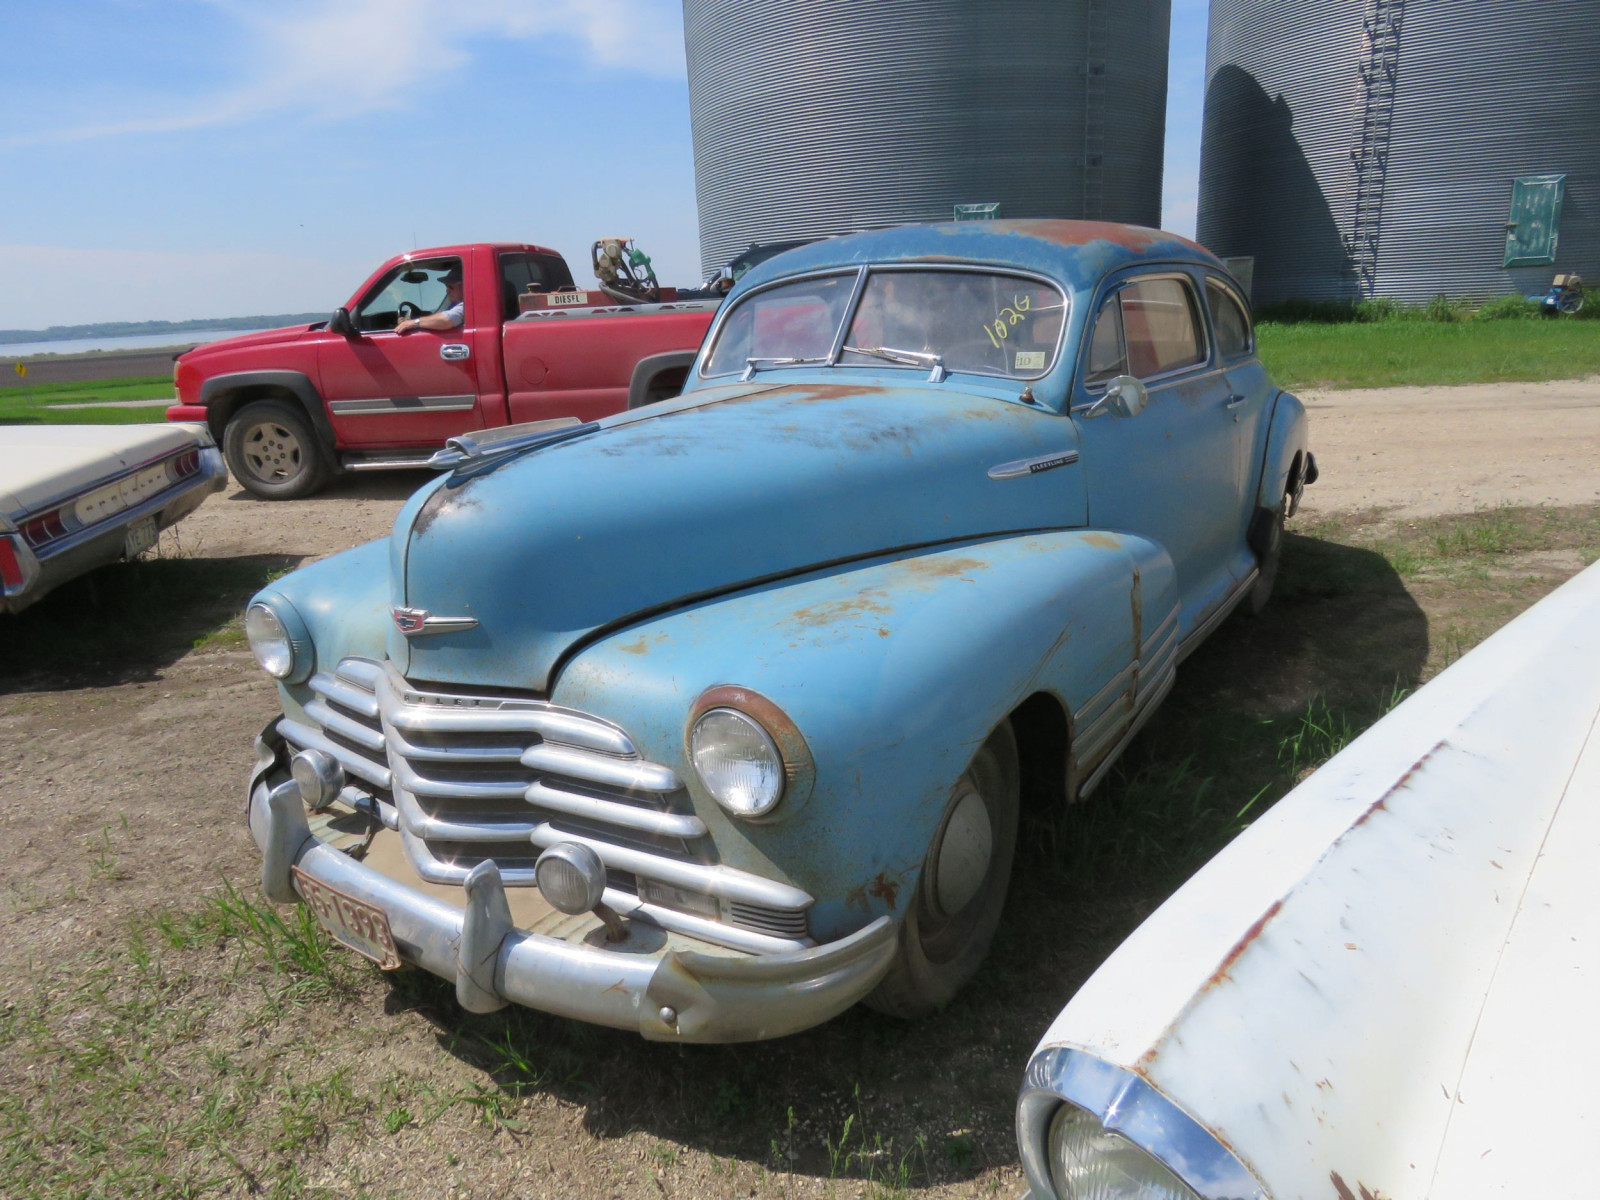 1947 Chevrolet Fleet line 2dr Sedan - Image 1